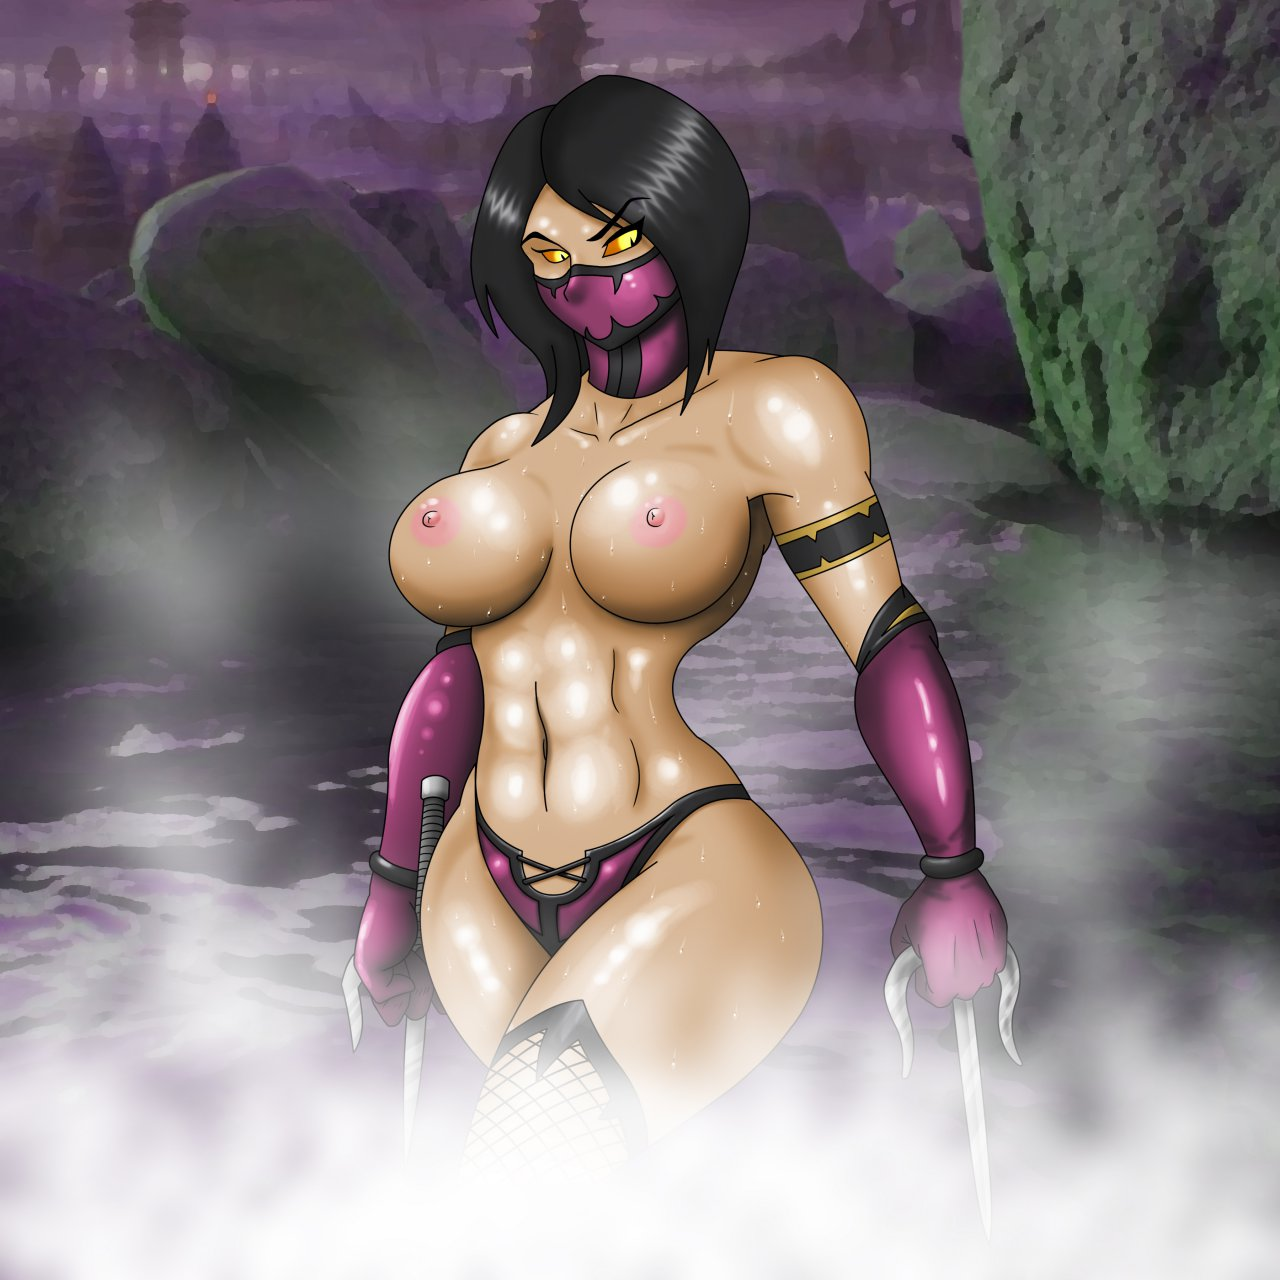 Mileena naked porn hentai photo